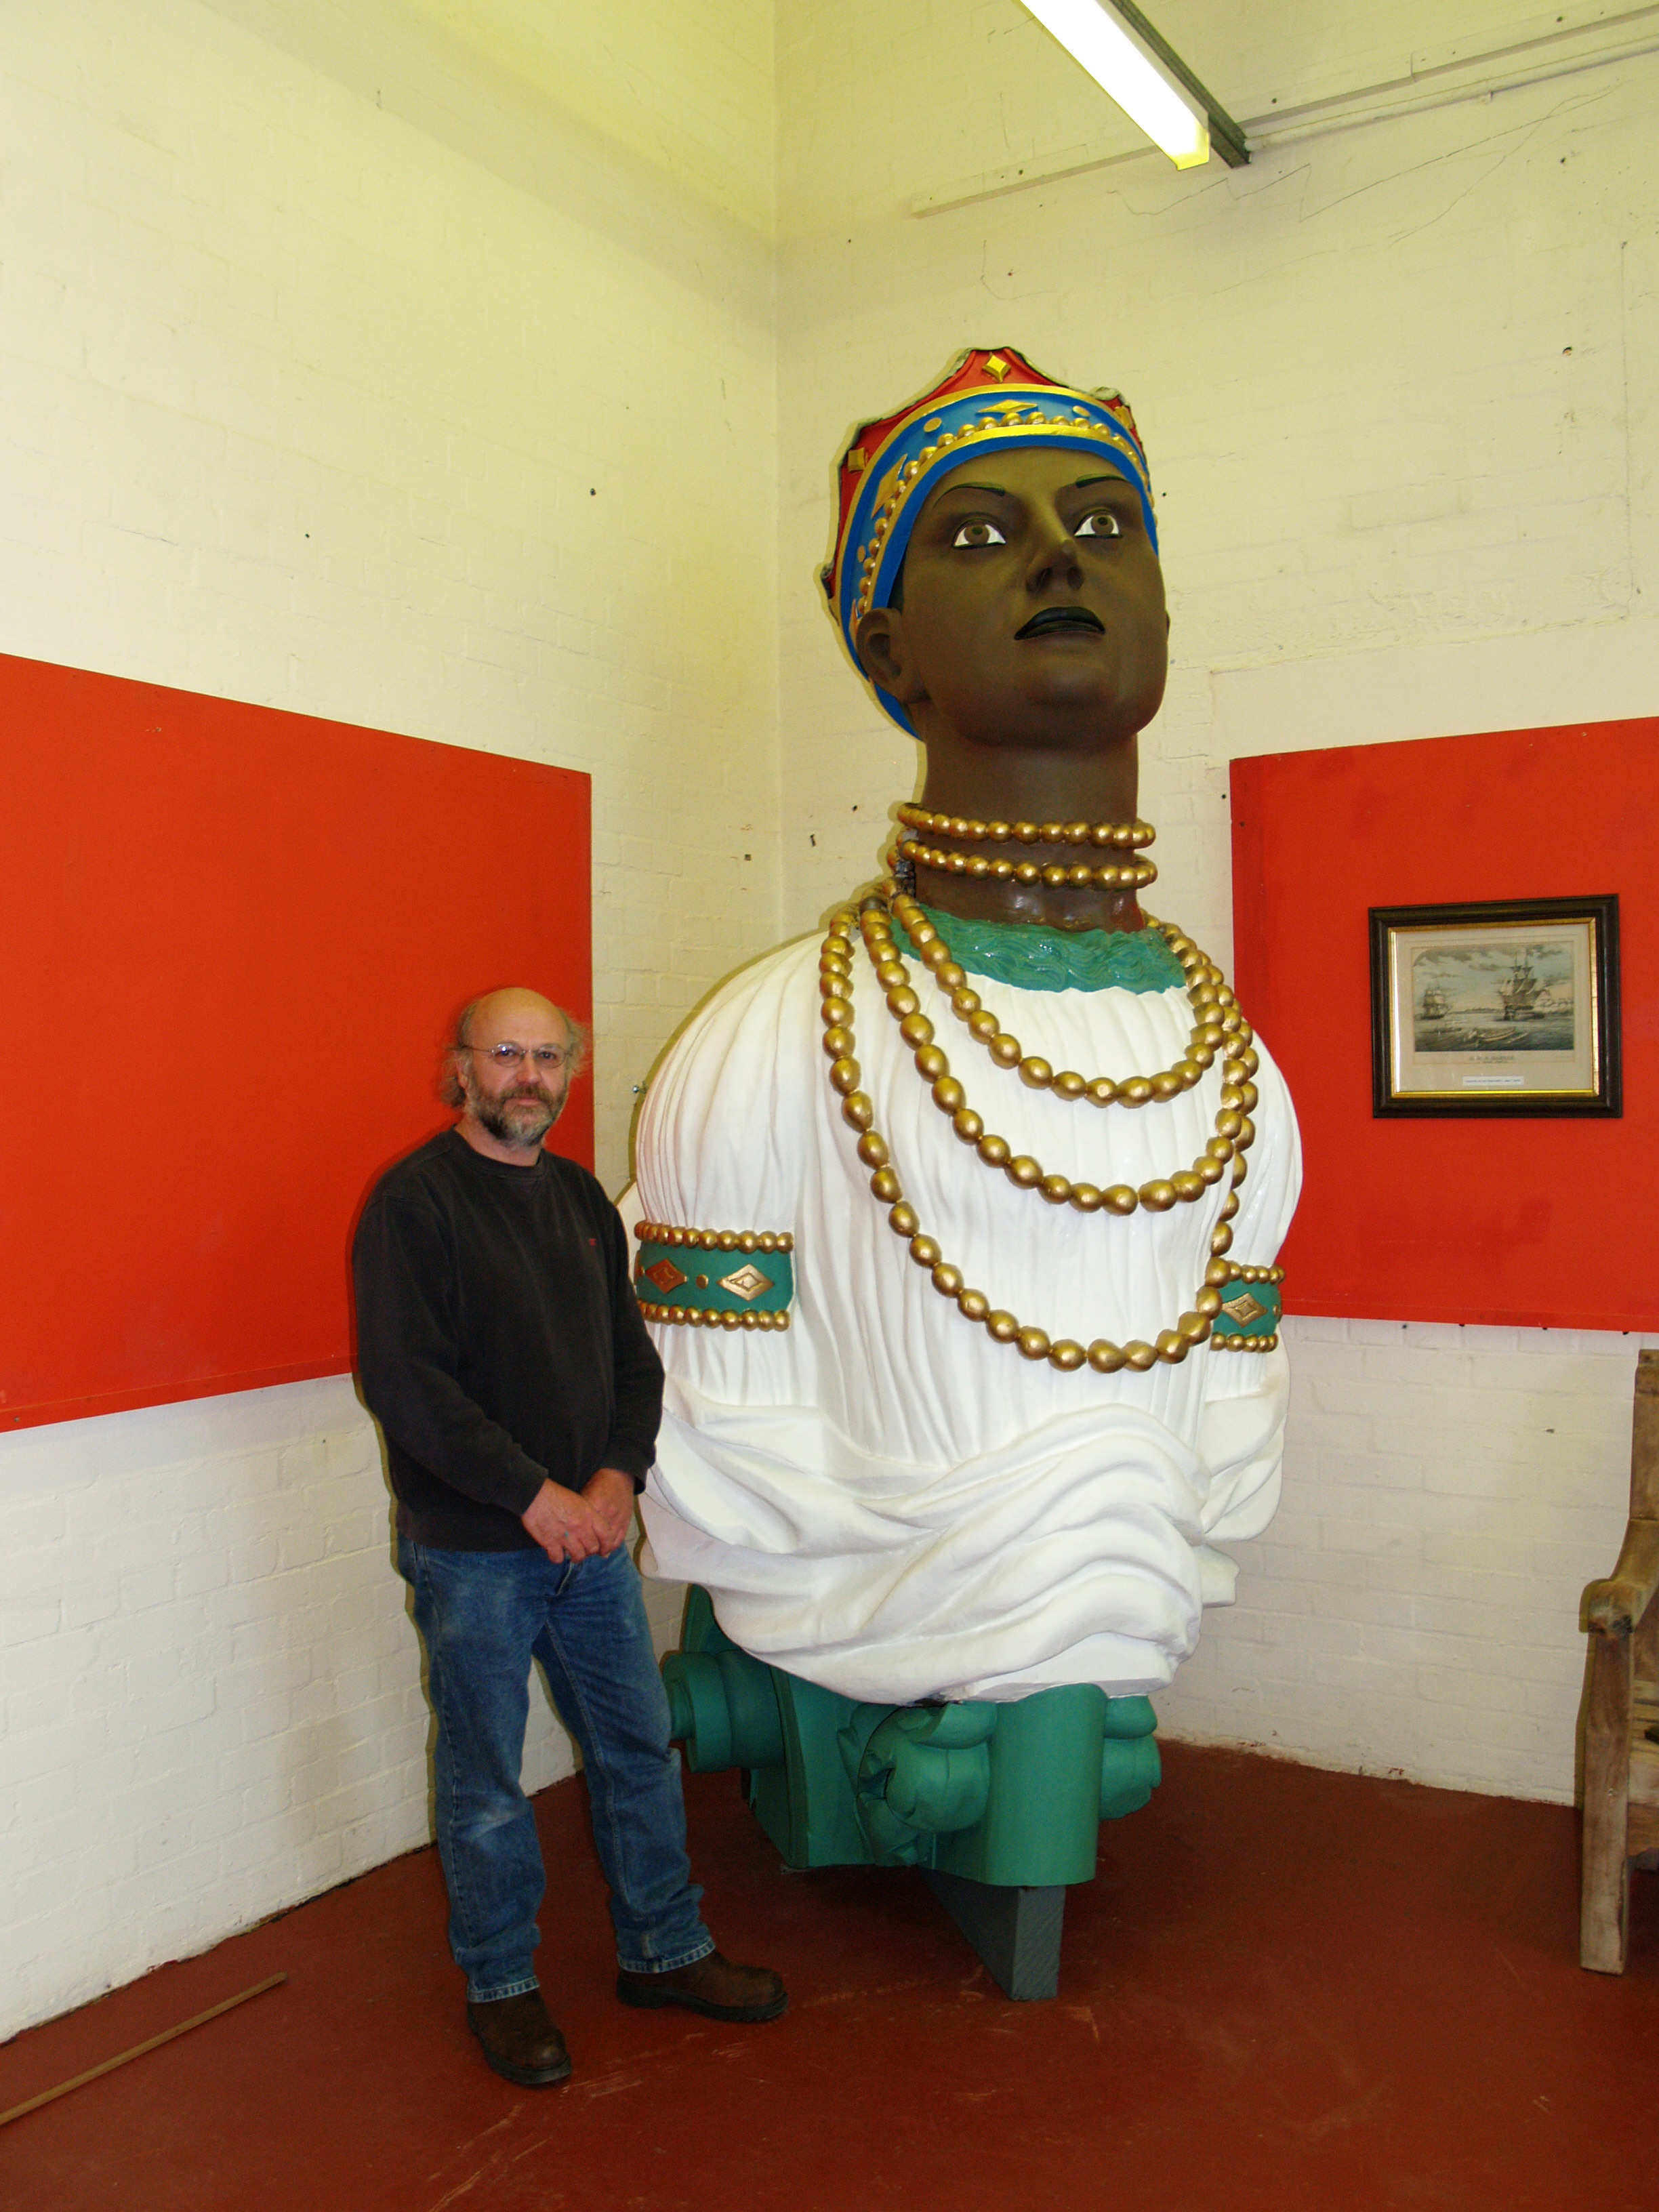 Kelvin standing with his restored ships figurehead